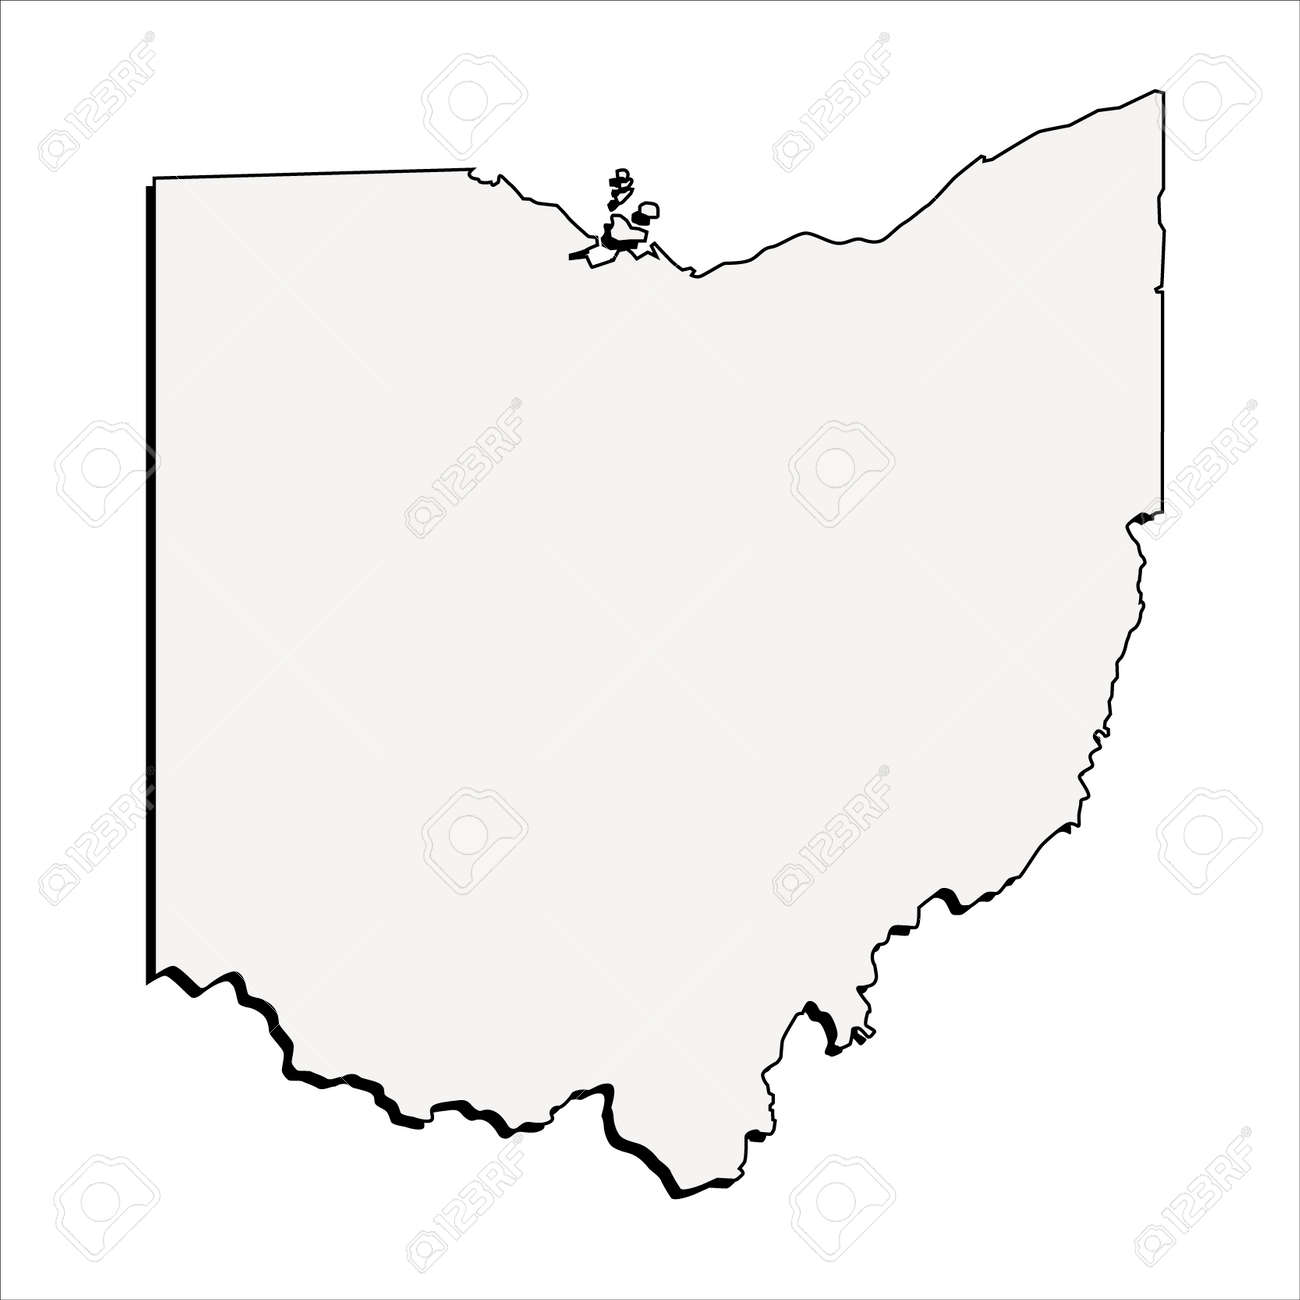 Outline Map Of Ohio.Vector Ohio State 3d Outline Map Royalty Free Cliparts Vectors And